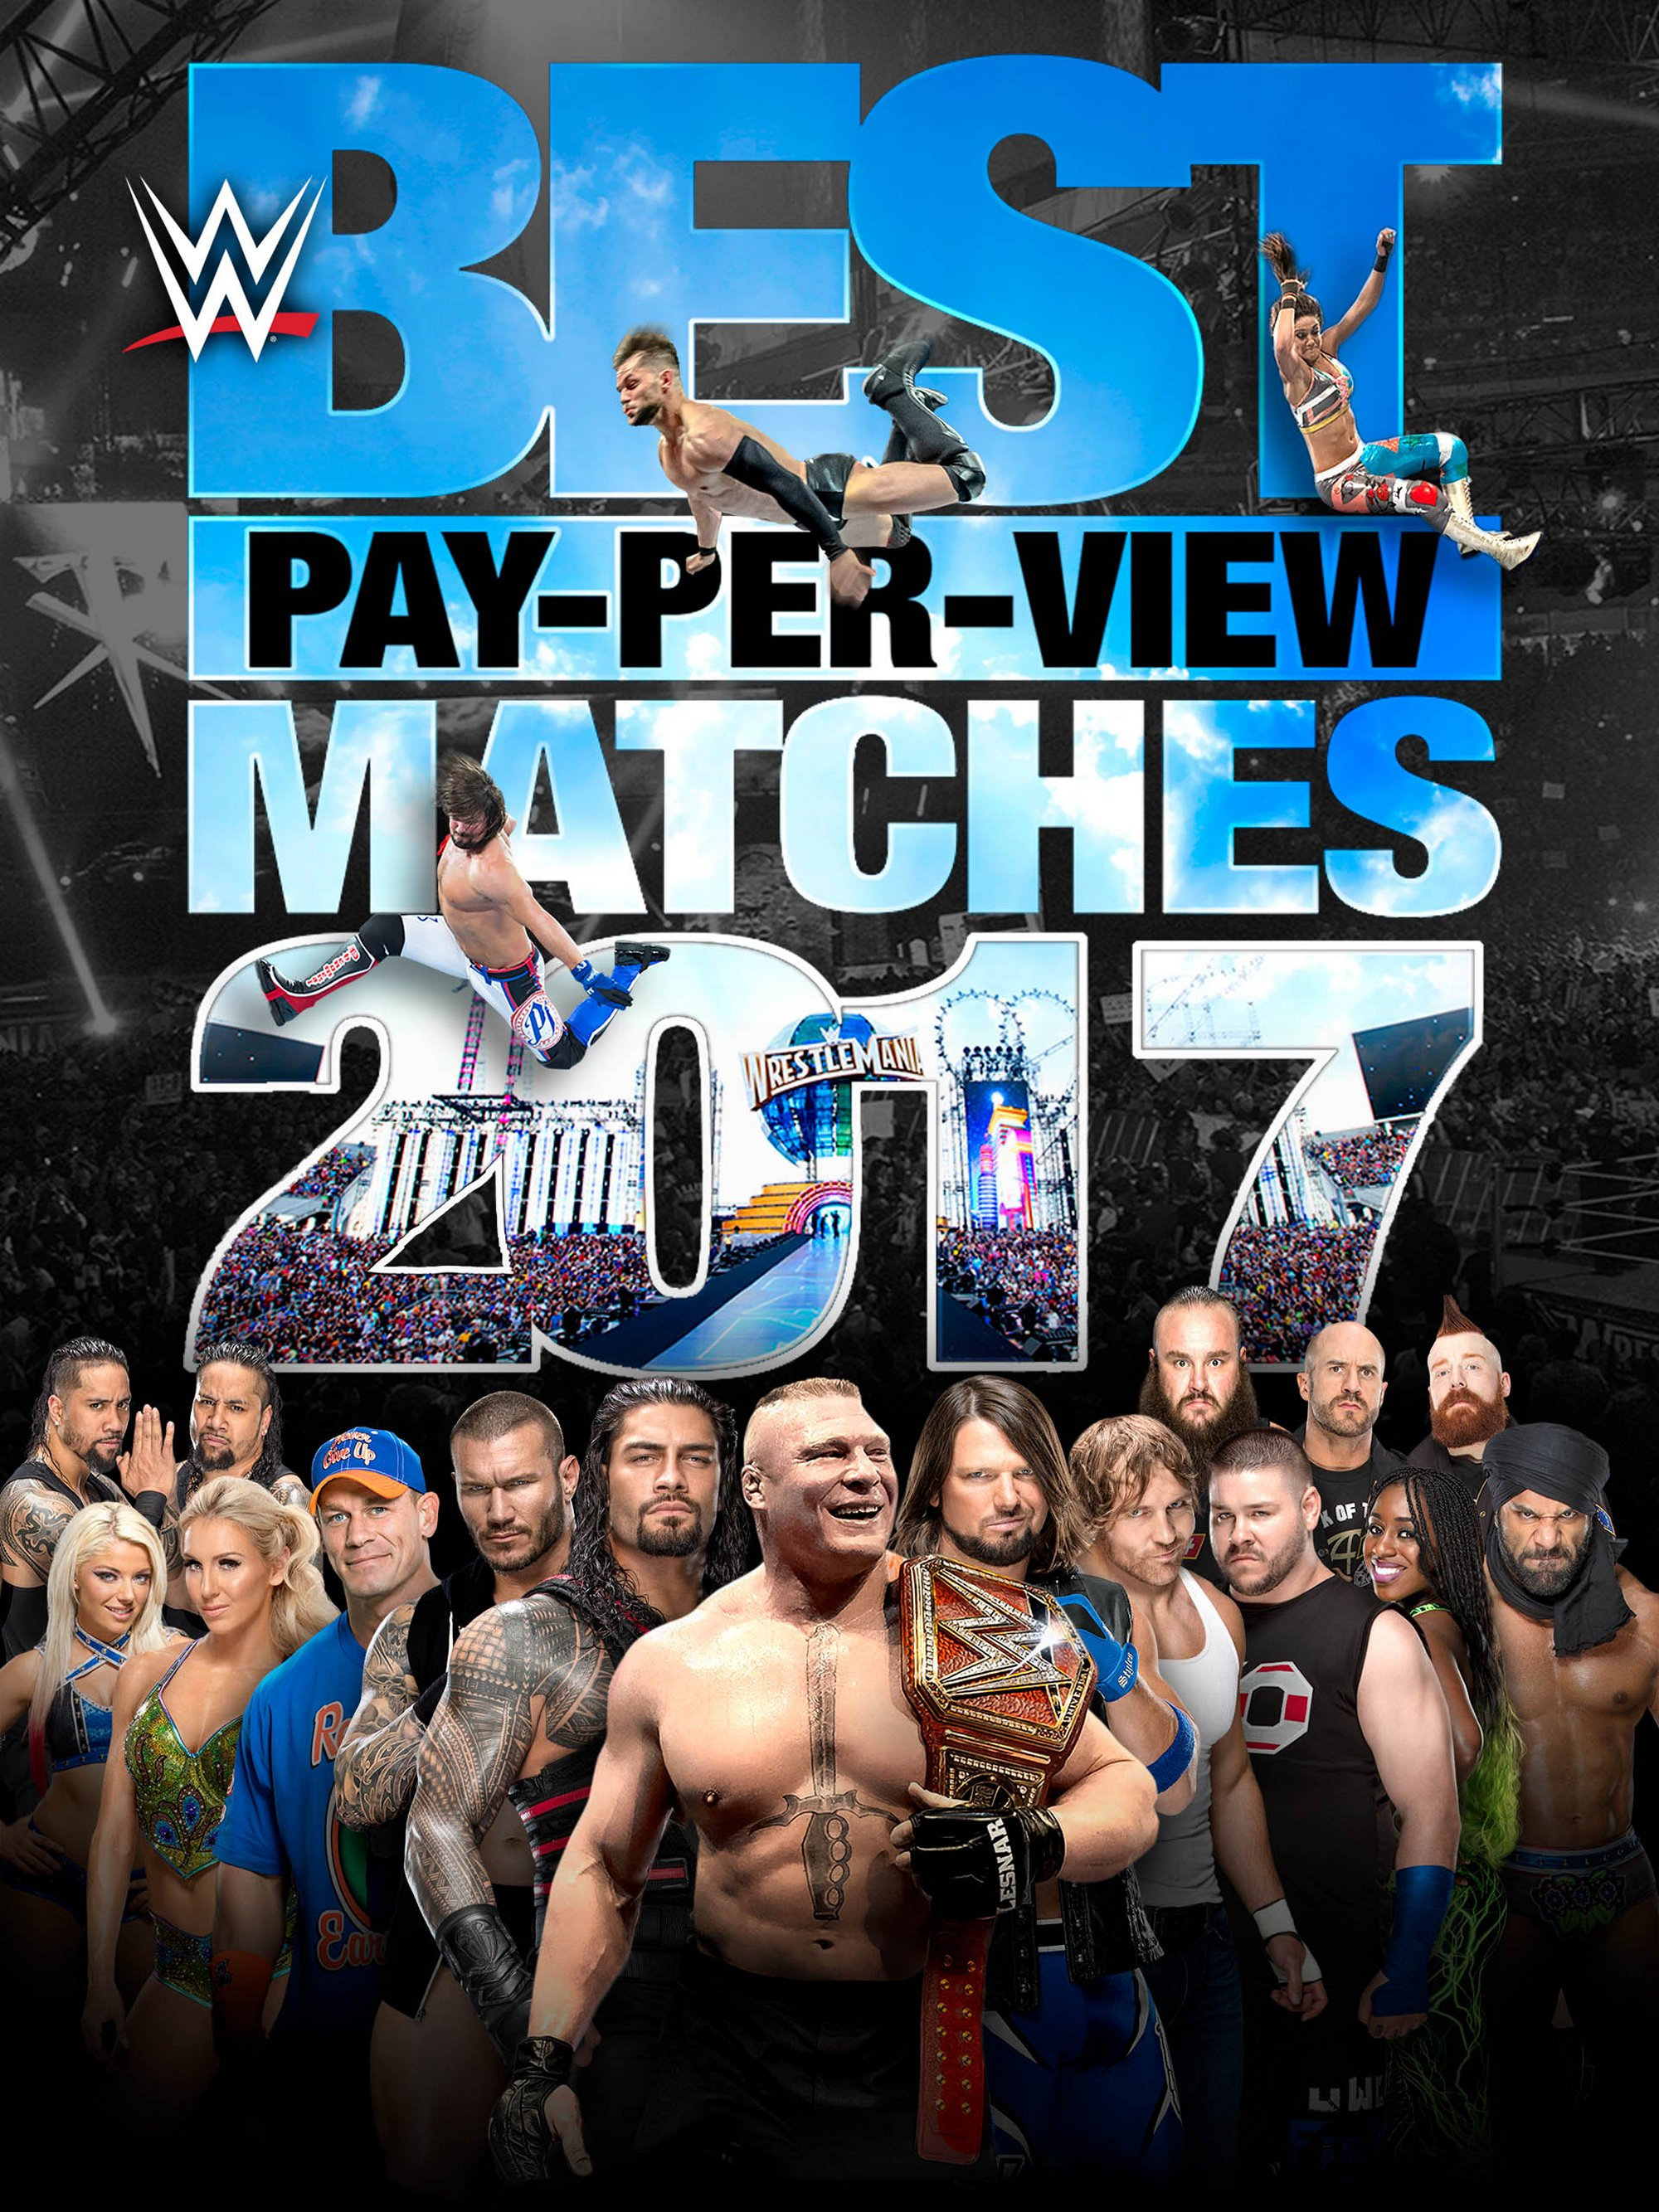 WWE: Best PPV Matches 2017 (DVD) by